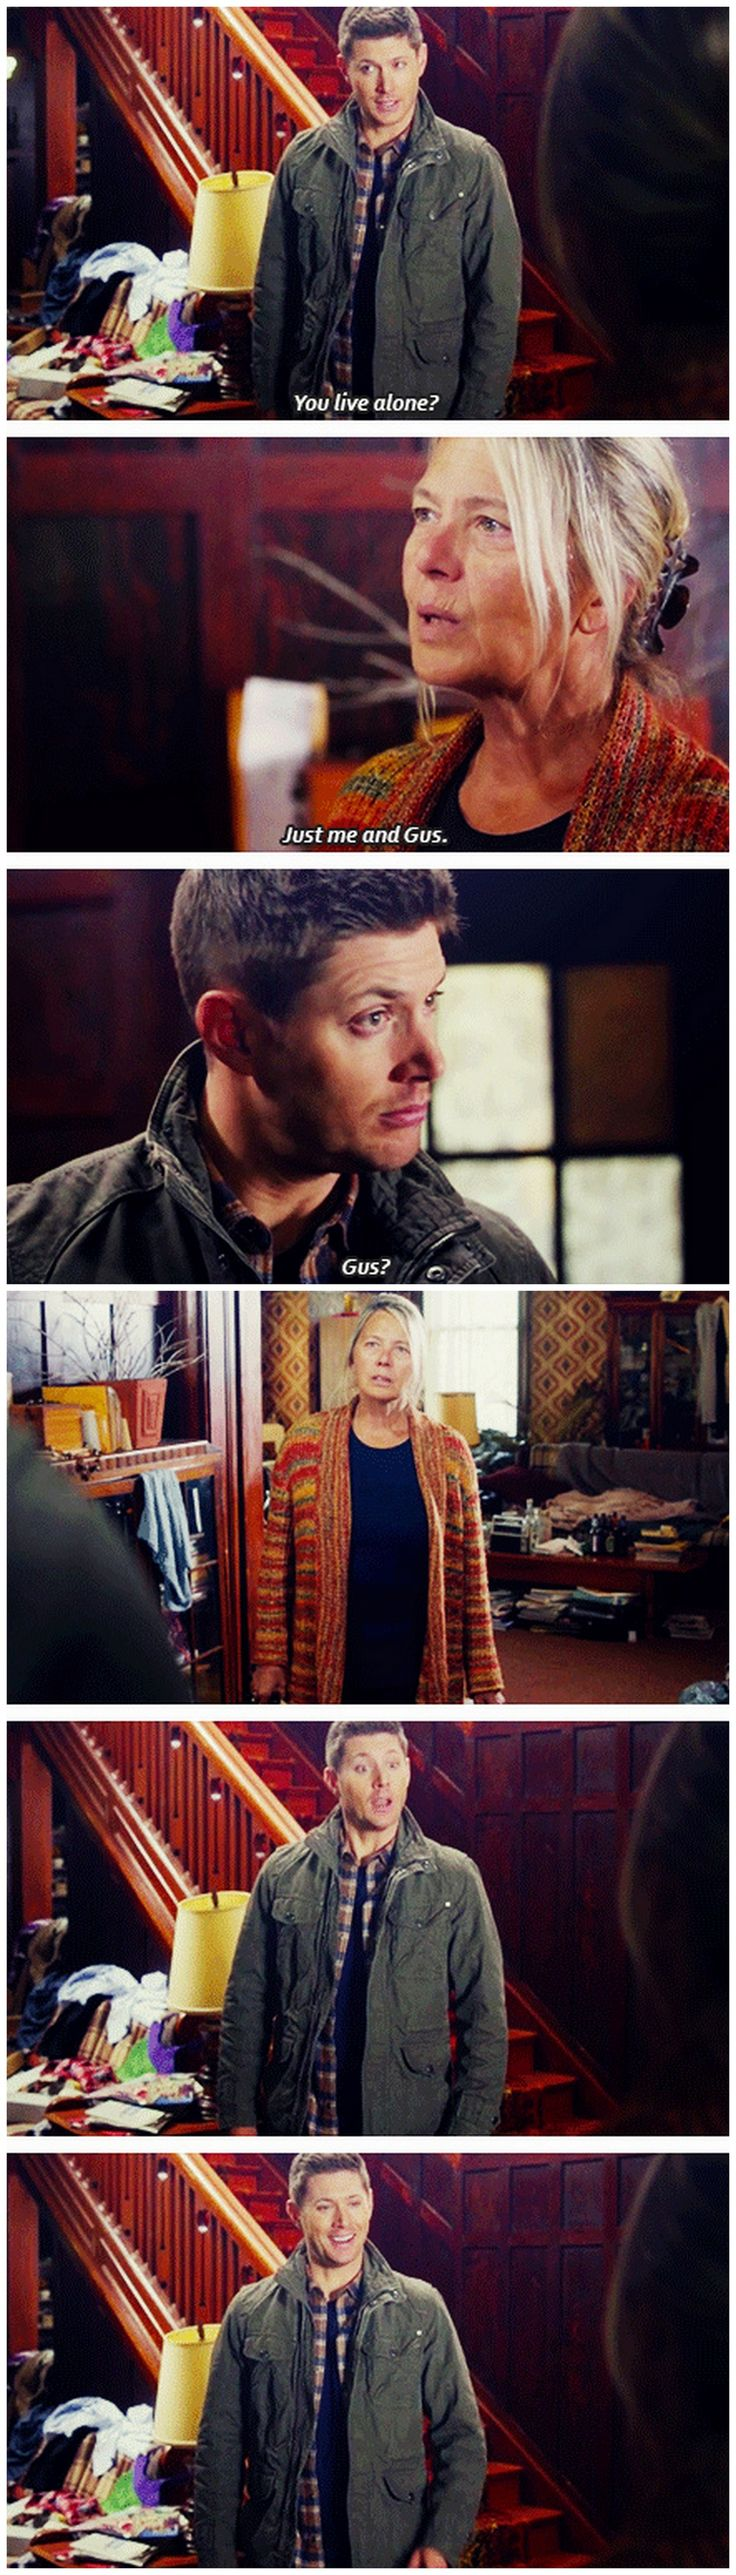 [gifset] 10x19 The Werther Project. Dean was so cute and uncomfortable around this lady. XD